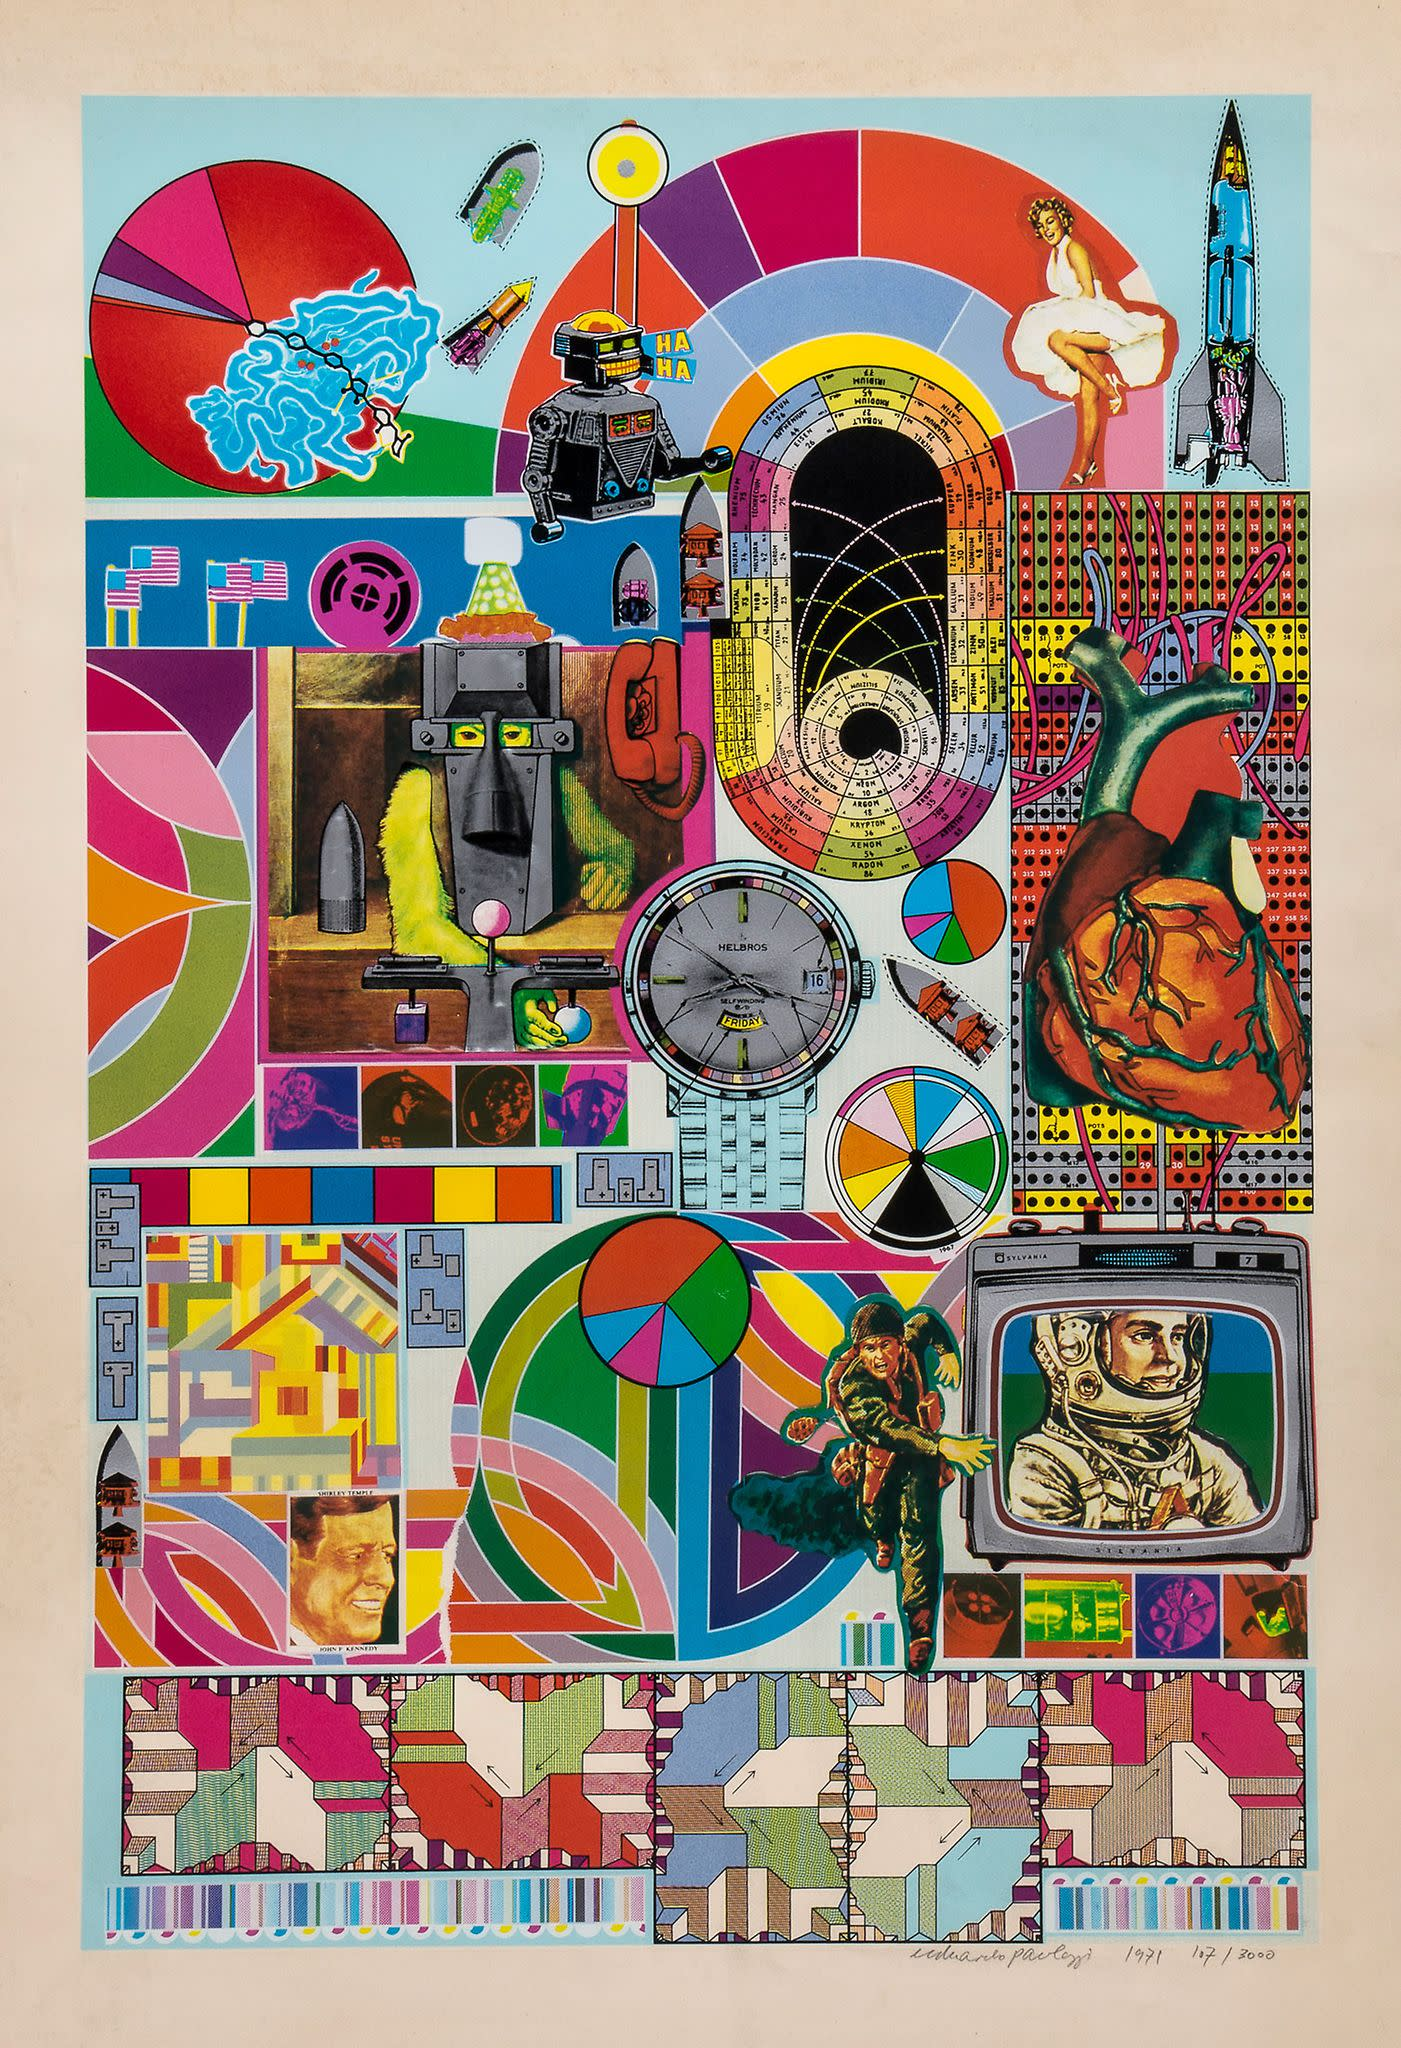 <span class=&#34;link fancybox-details-link&#34;><a href=&#34;/content/viewing-room/29/artworks407/&#34;>View Detail Page</a></span><div class=&#34;artist&#34;><strong>Eduardo Paolozzi</strong></div><div class=&#34;title&#34;><em>B.A.S.H (Blue)</em>, 1971</div><div class=&#34;signed_and_dated&#34;>Stamped Paolozzi Foundation</div><div class=&#34;medium&#34;>Screenprint - AP </div><div class=&#34;dimensions&#34;>84.5 x 59cm</div>£ 1,600.00